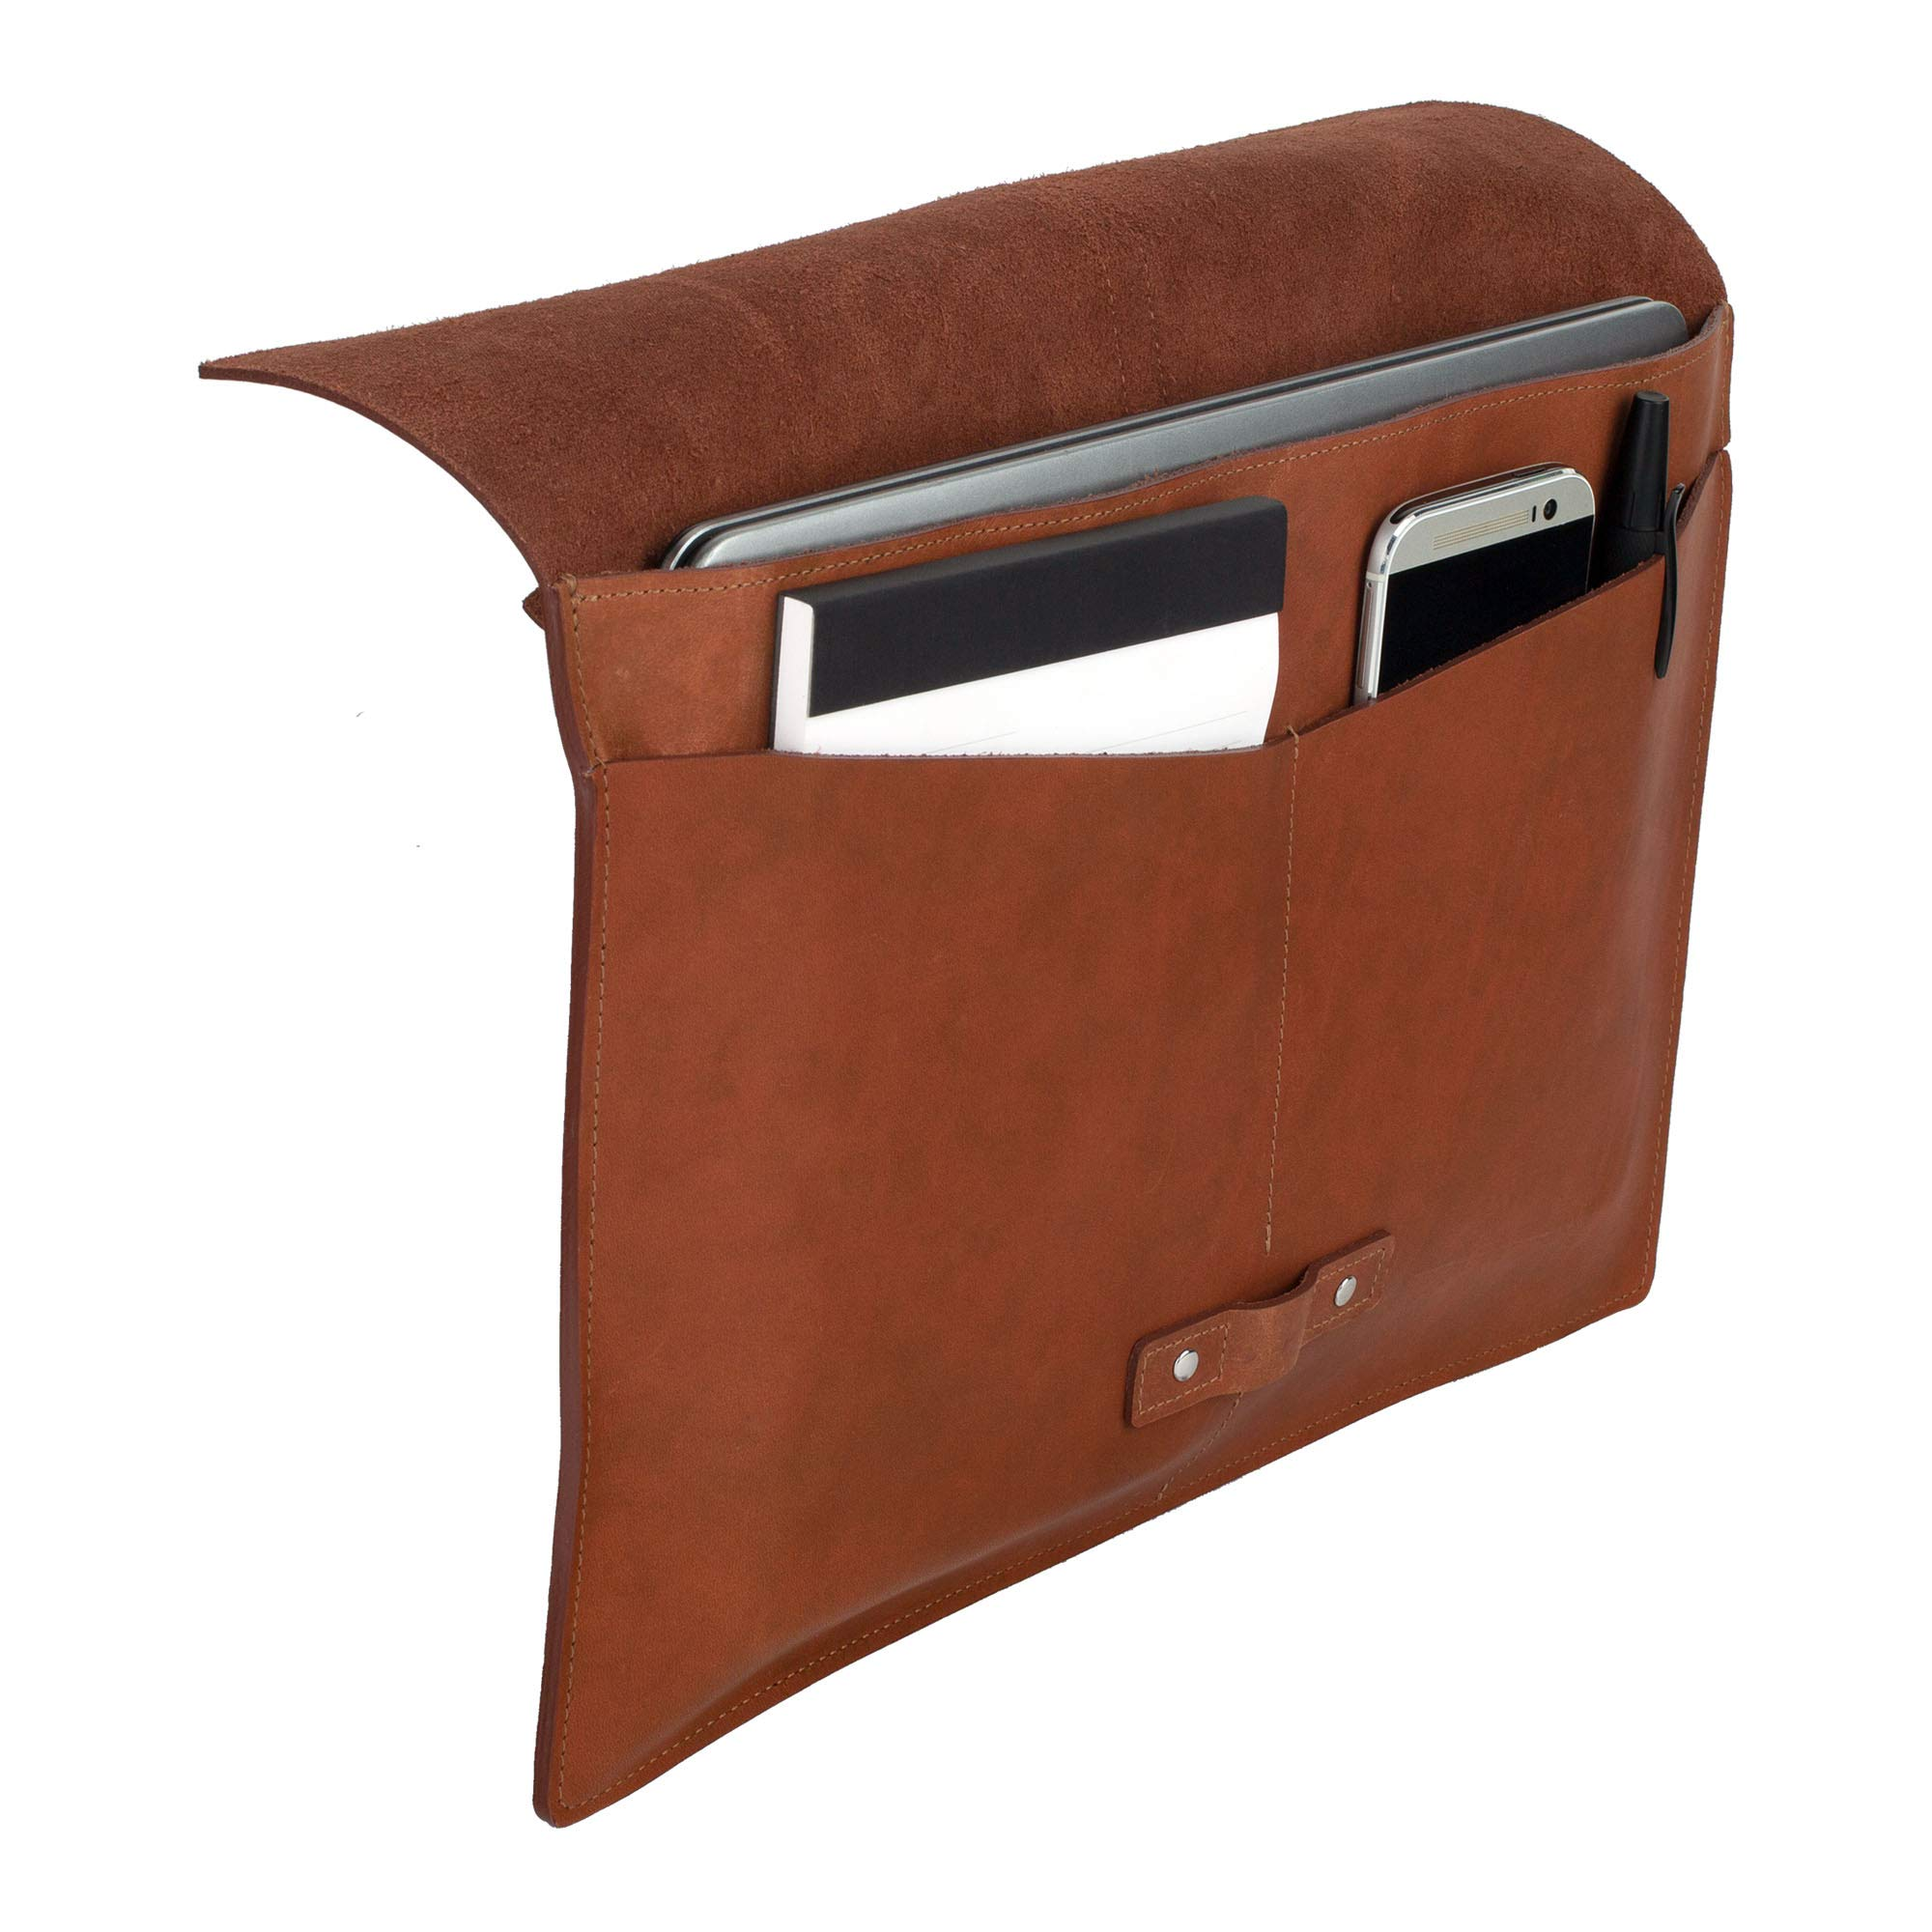 SLATE COLLECTION Belltown Small Laptop Sleeve, Full-Grain Leather (Cognac, fits 13'' Laptop) by SLATE COLLECTION (Image #8)